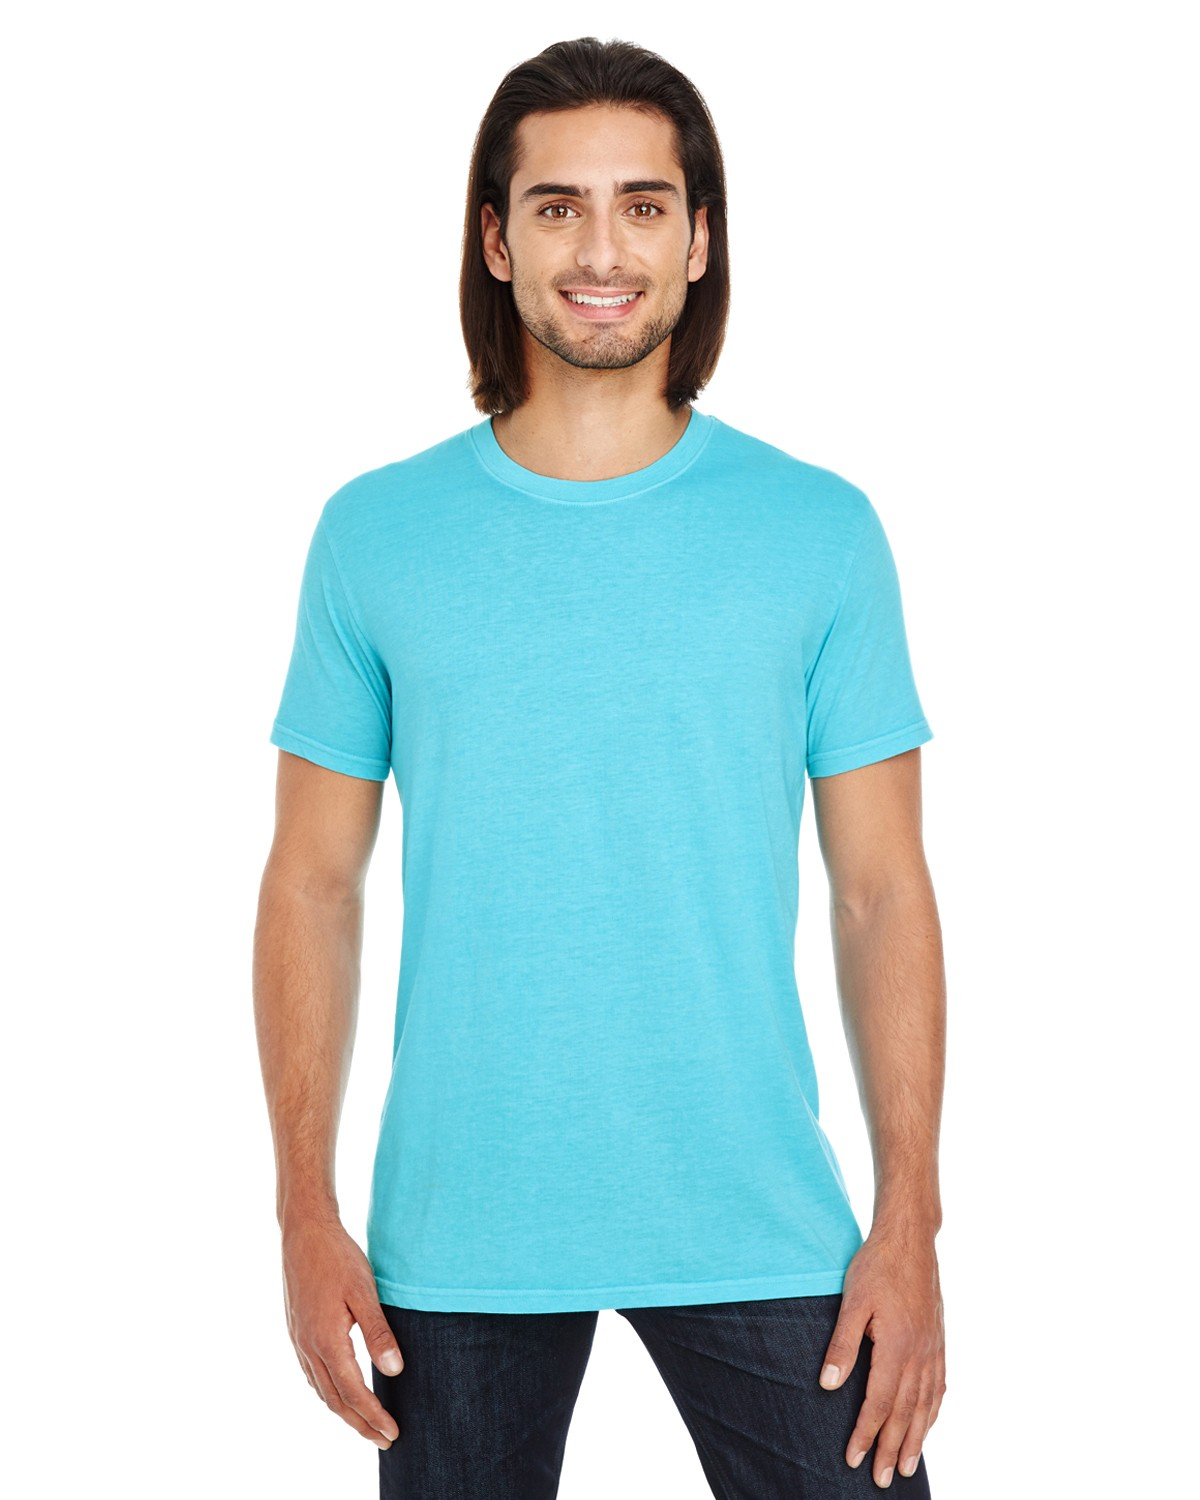 130A Threadfast Apparel LAGOON BLUE